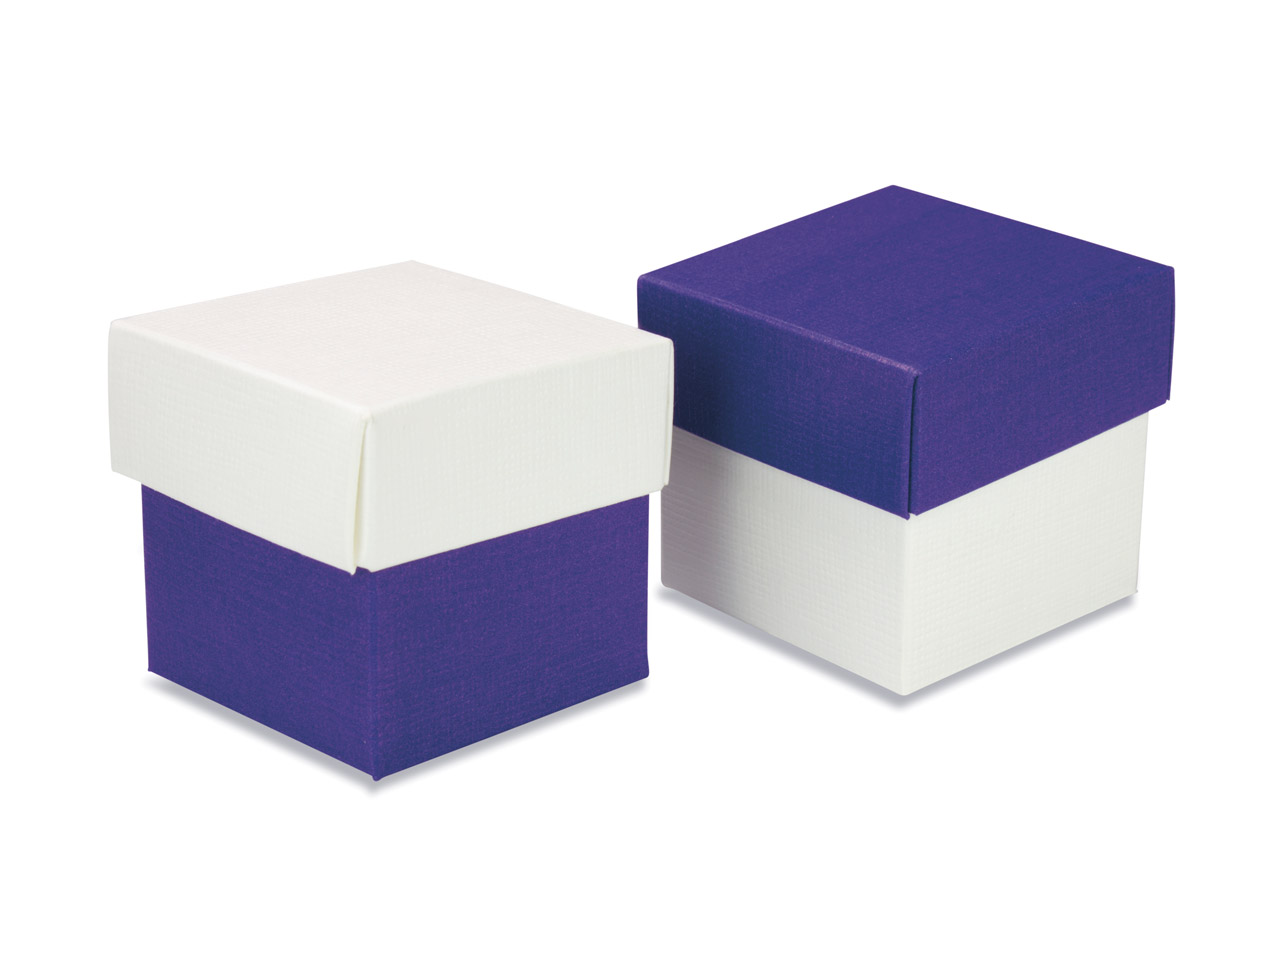 Flat Pack Square Box 2 Tone Purple And White Pack of 10